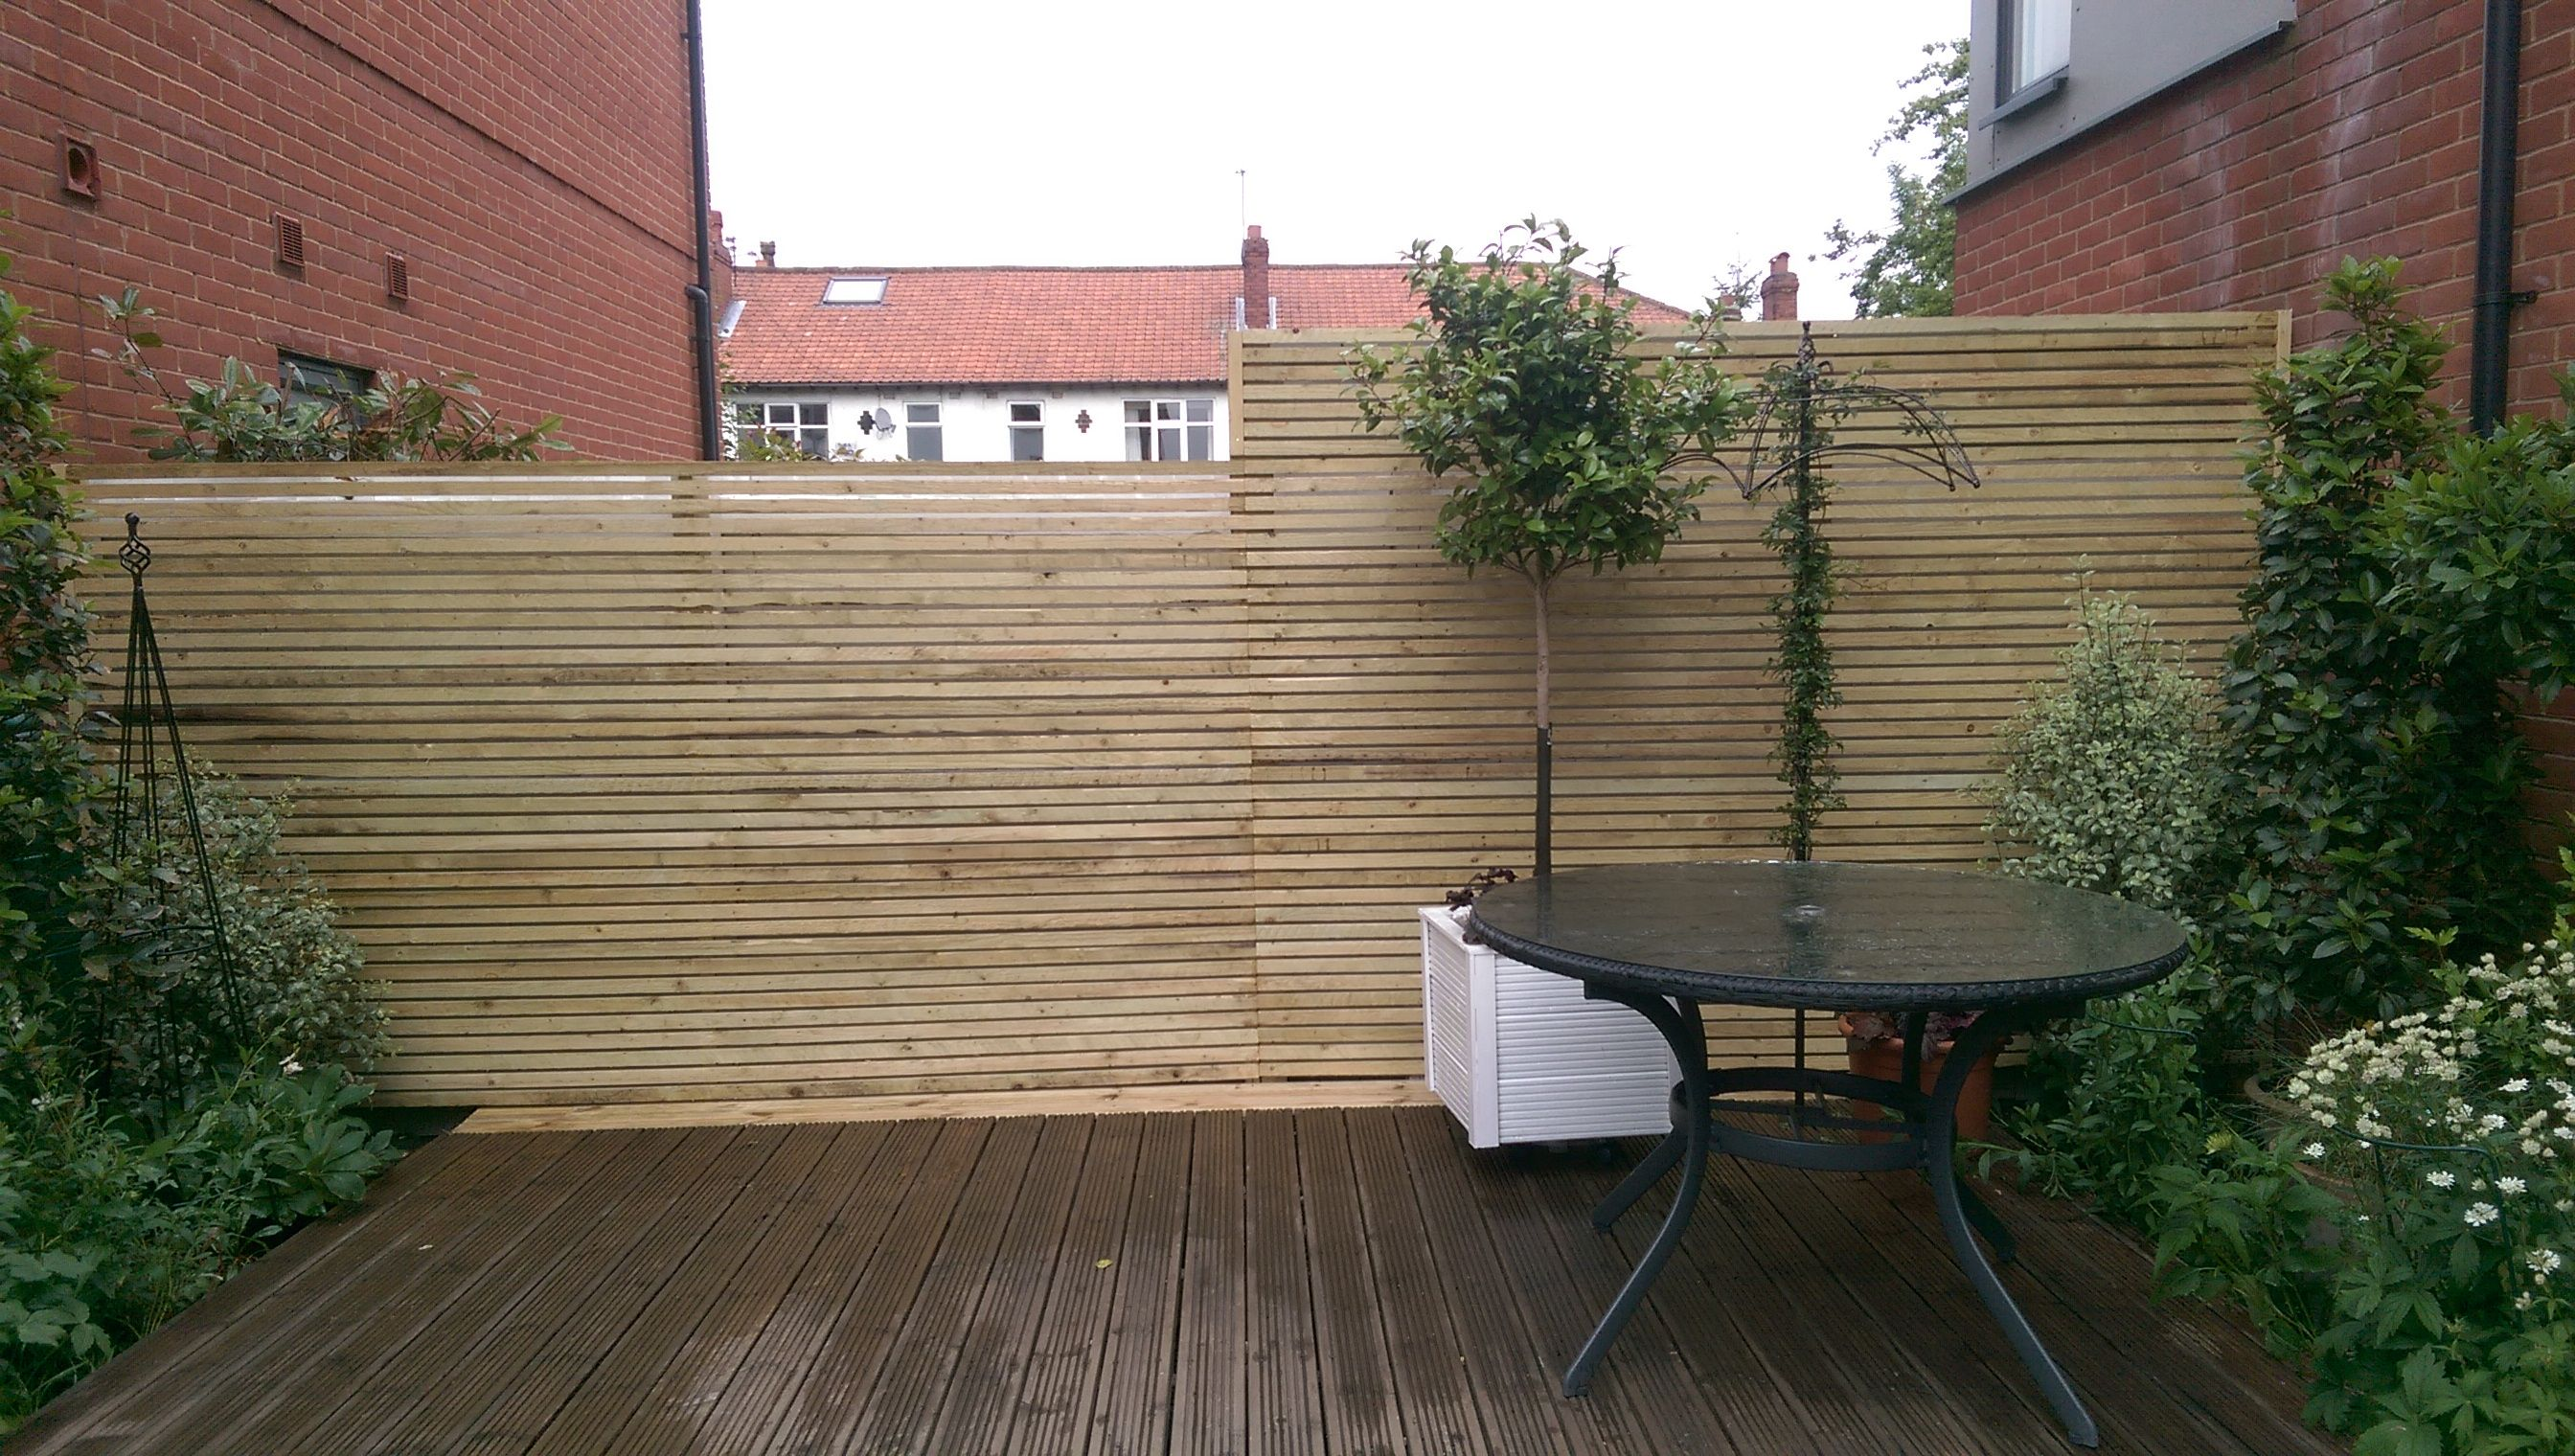 This image shows a pressure treated slatted screen fence panel this image shows a pressure treated slatted screen fence panel improve the aesthetic of a garden baanklon Choice Image